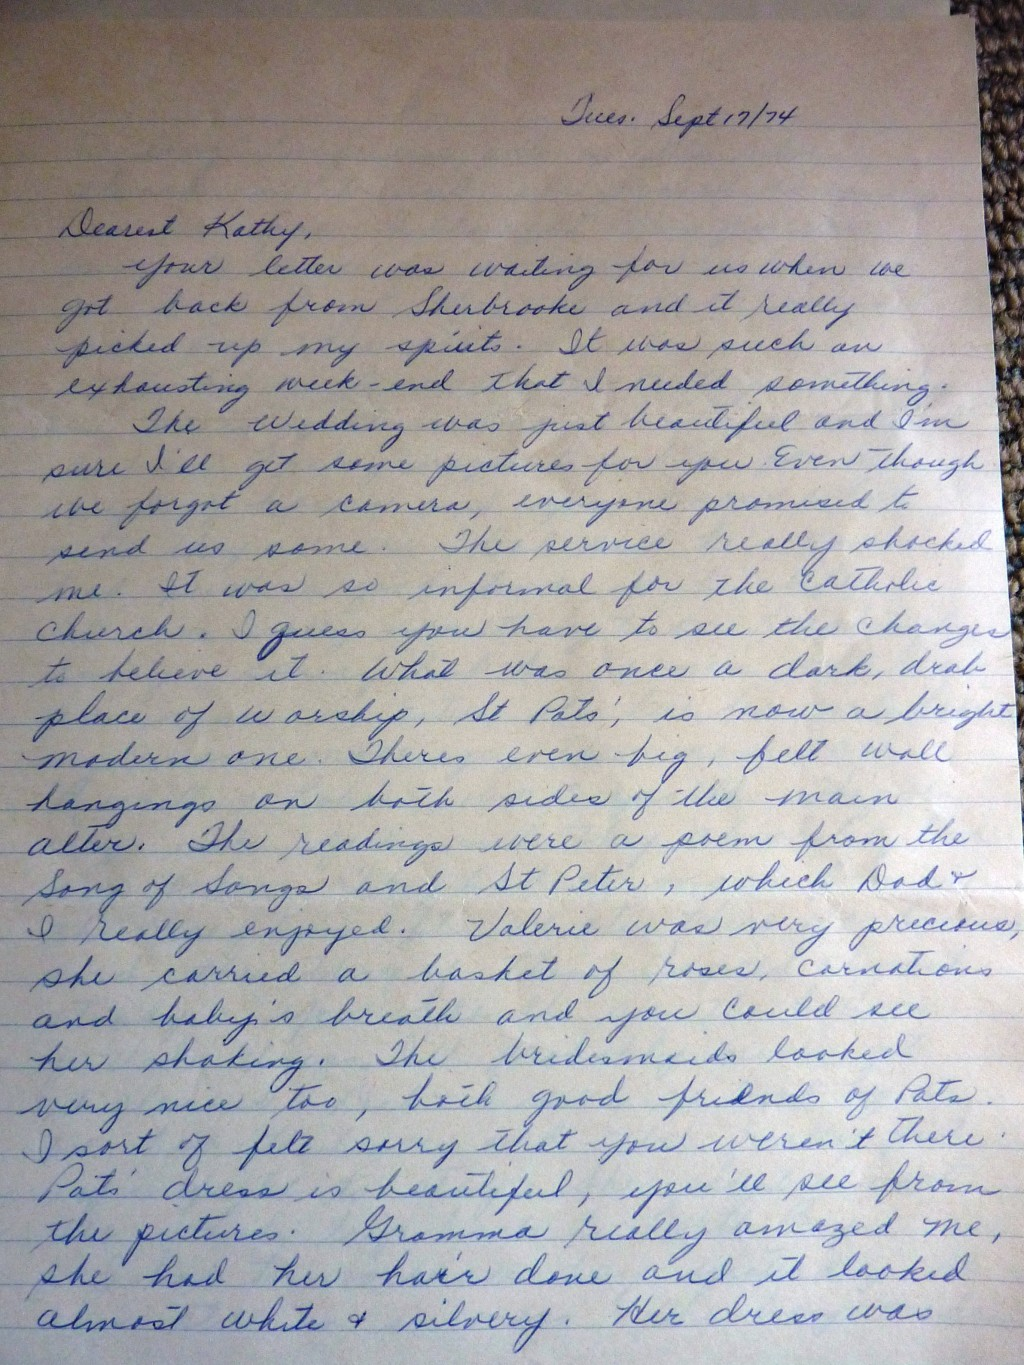 009 P1040267 My Mother Essay Archaicawful For Ukg English Motherland 500 Words Large